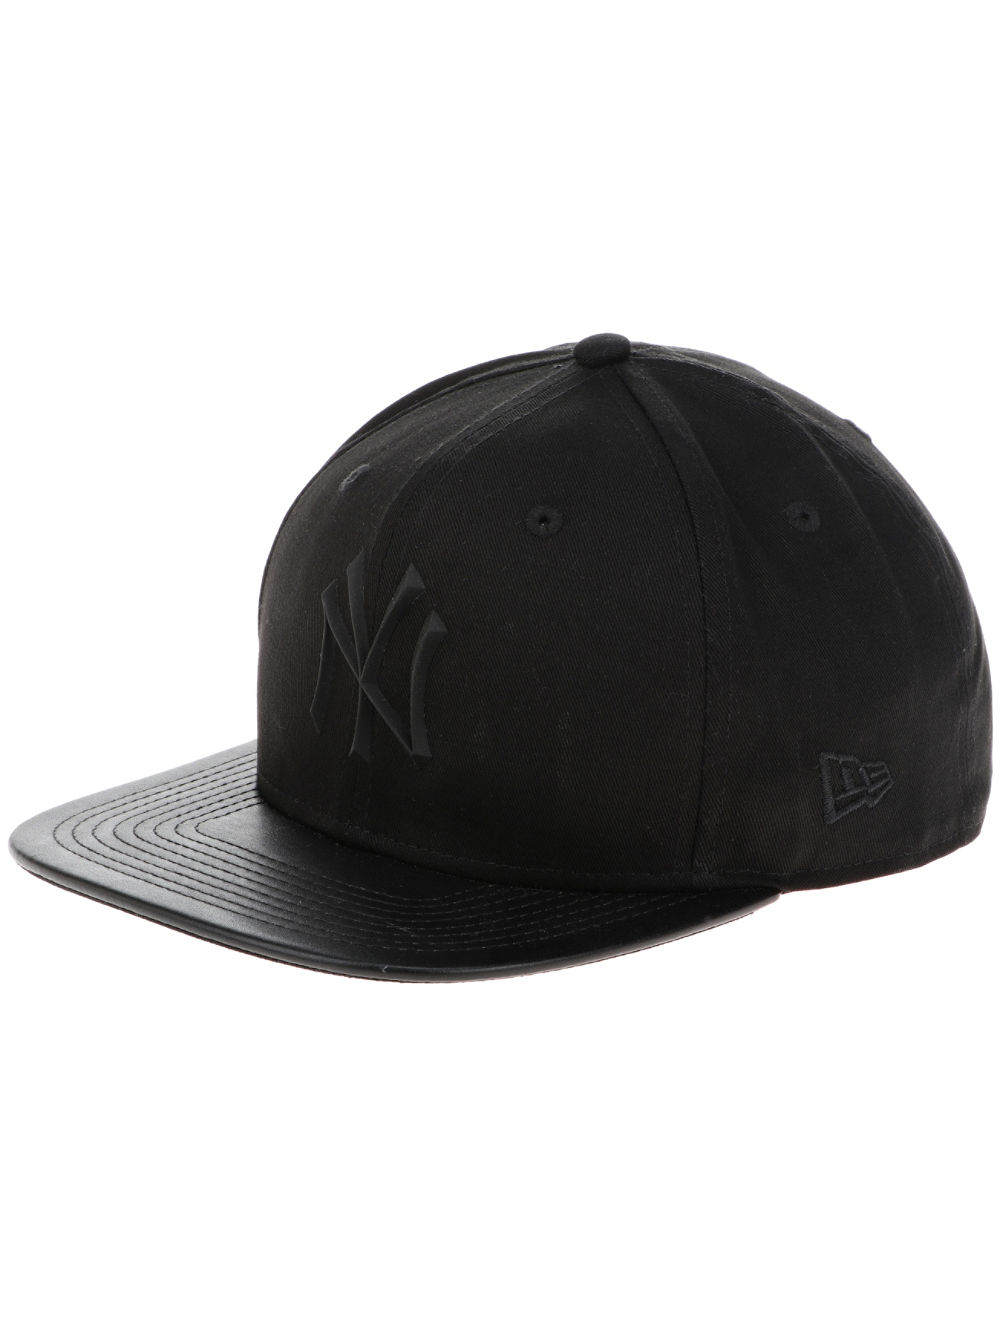 3a35724571be10 Buy New Era MLB NY Yankees Rubber Prime Cap online at Blue Tomato